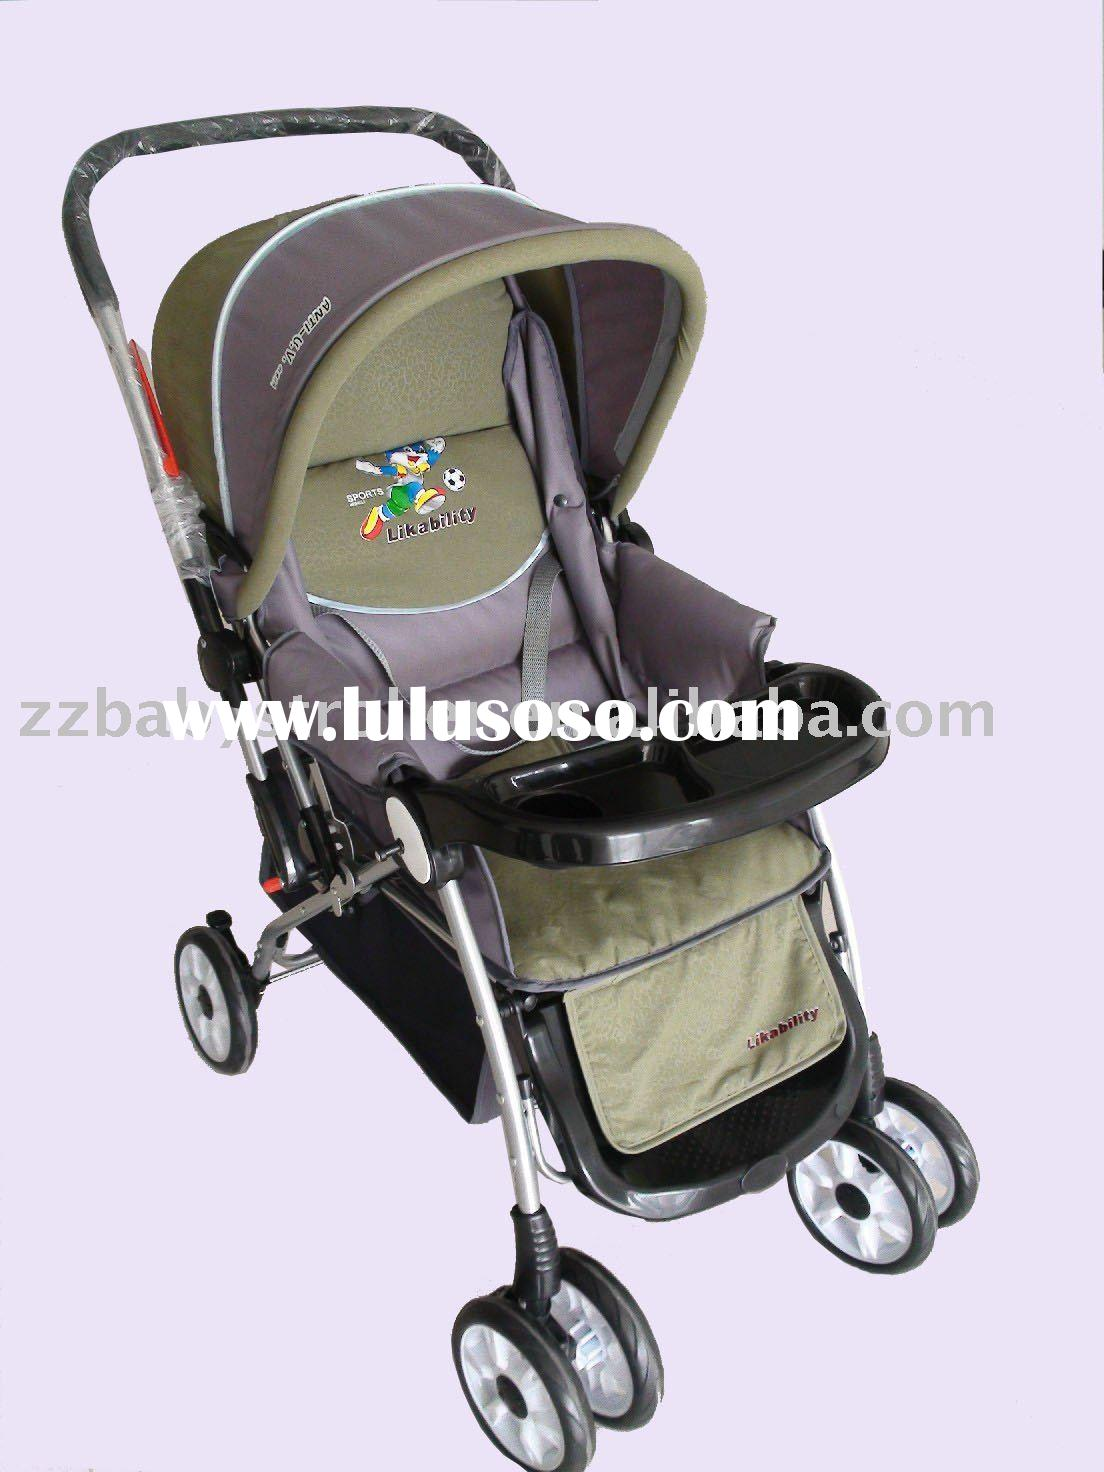 graco stroller with reversible handle